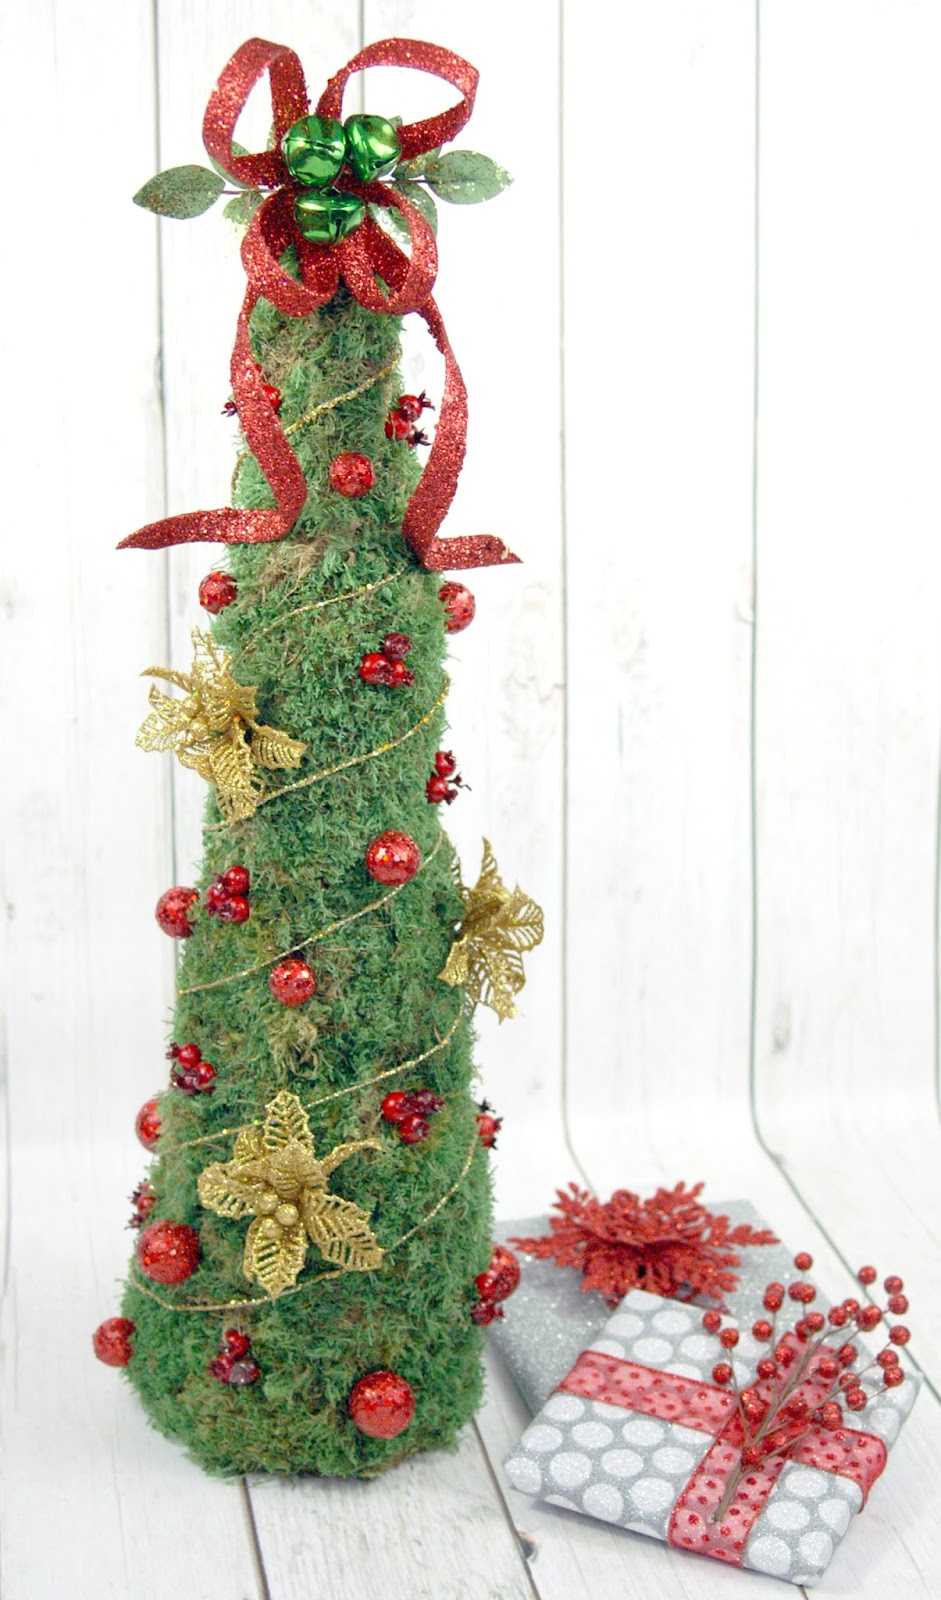 DIY Rustic Moss Christmas Tree by The Scrap Shoppe - Do More for Less